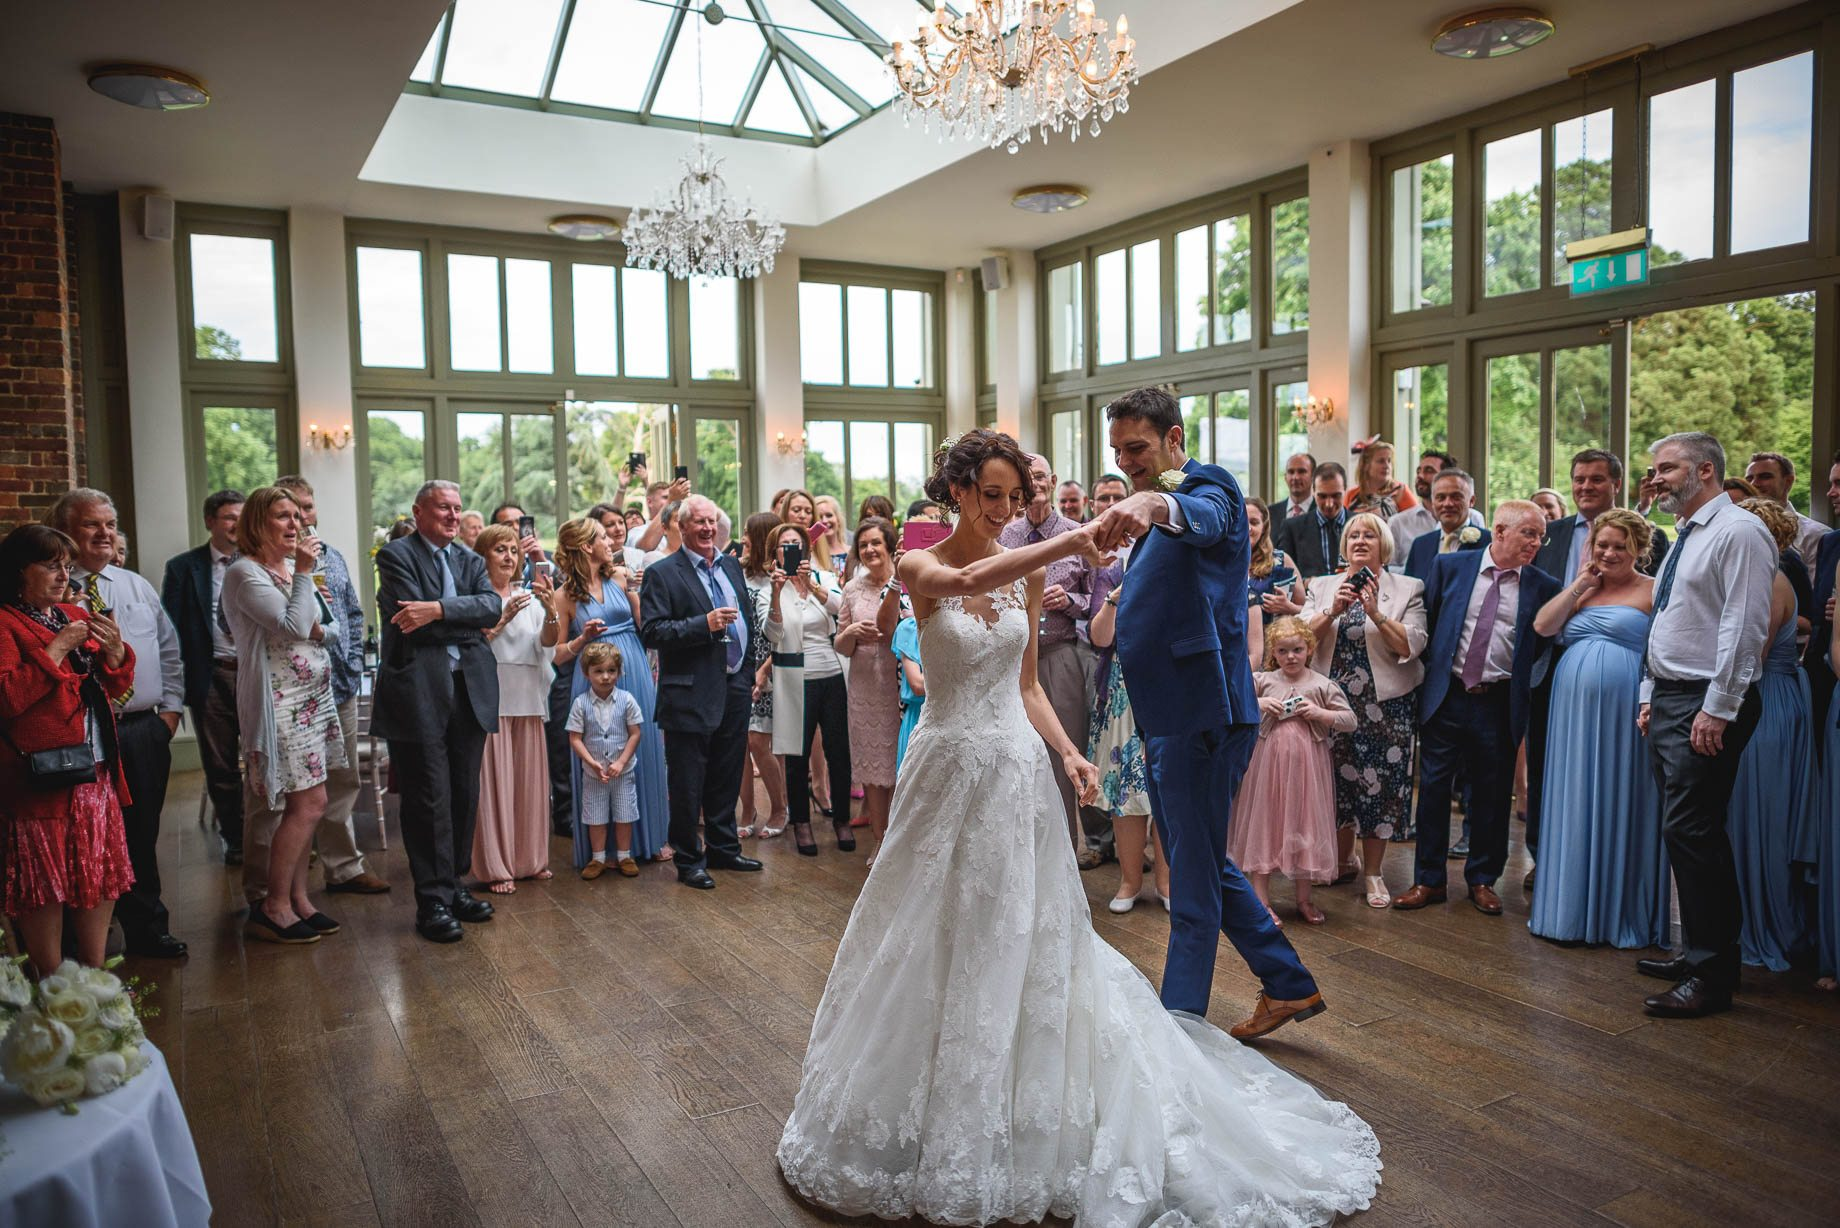 Hertfordshire wedding photography - Sarah and Stephen by Guy Collier Photography (155 of 161)